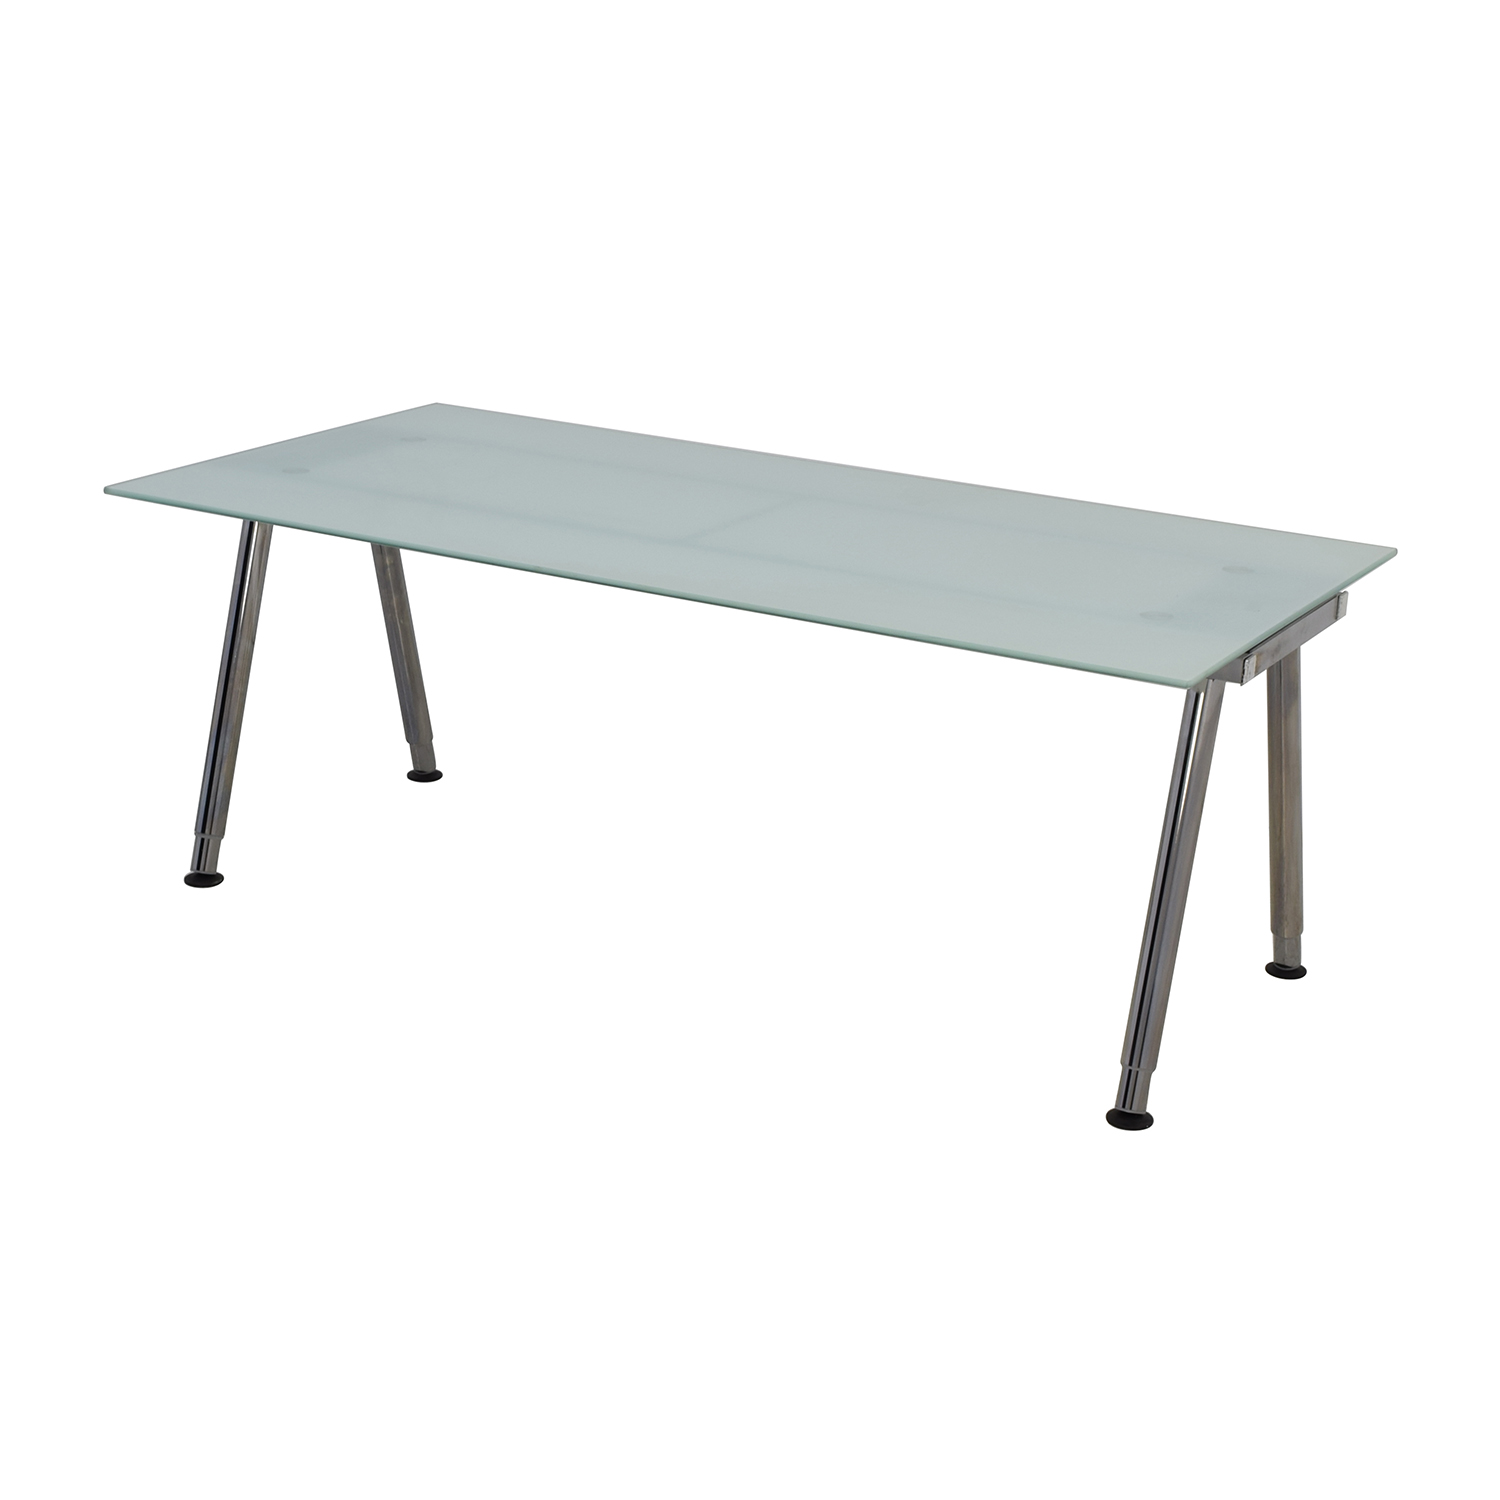 ... IKEA IKEA Galant Glass Top Desk Dimensions ...